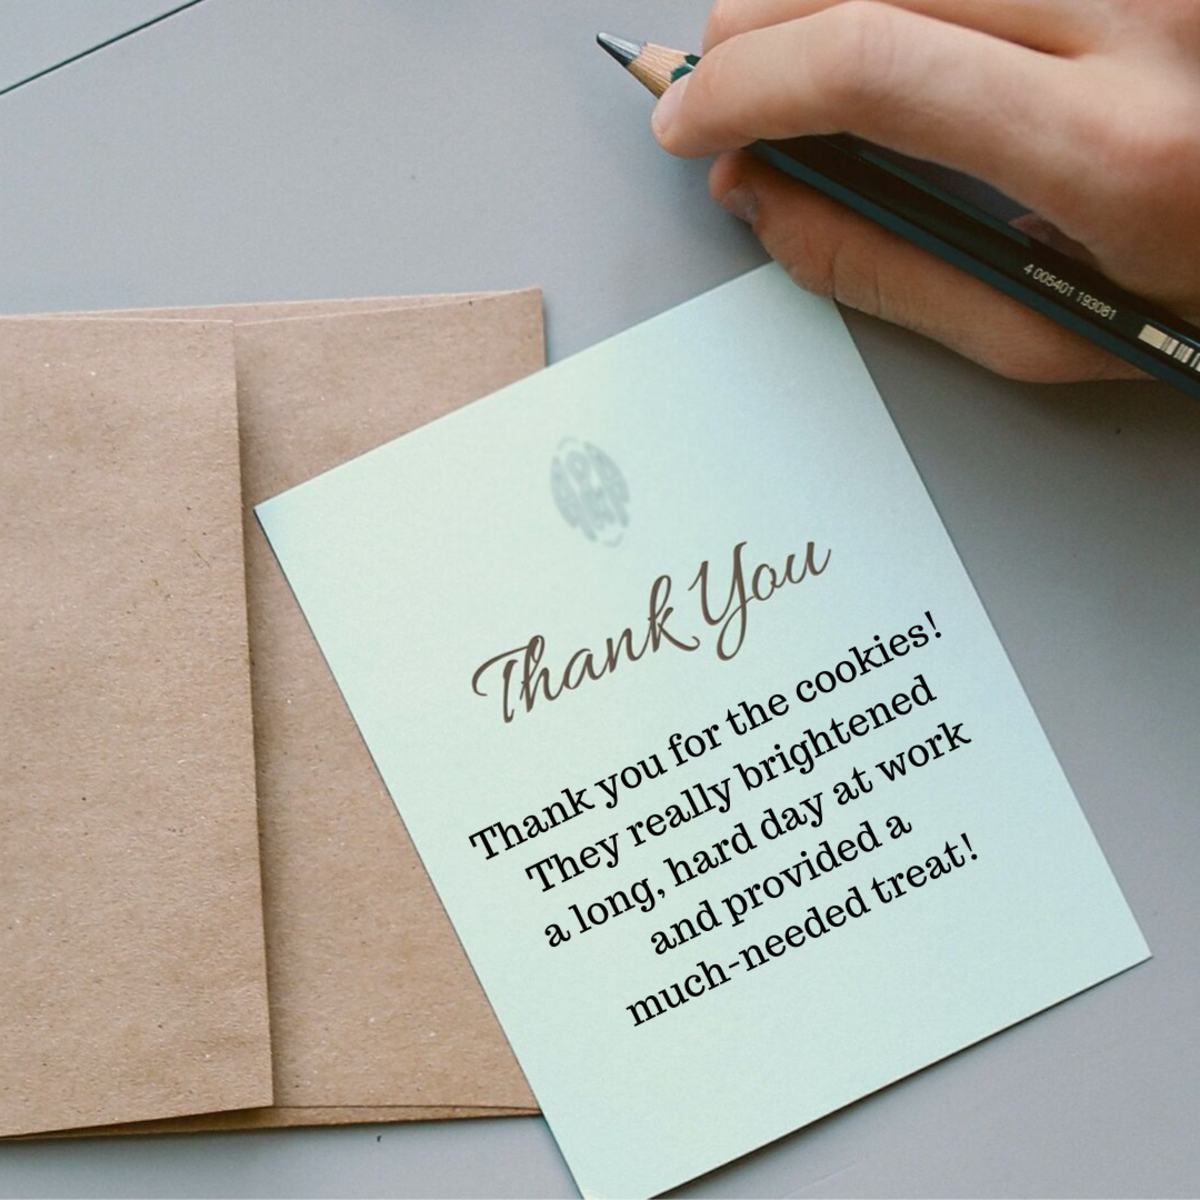 Highlight the kindness behind a small gift in your thank you note.